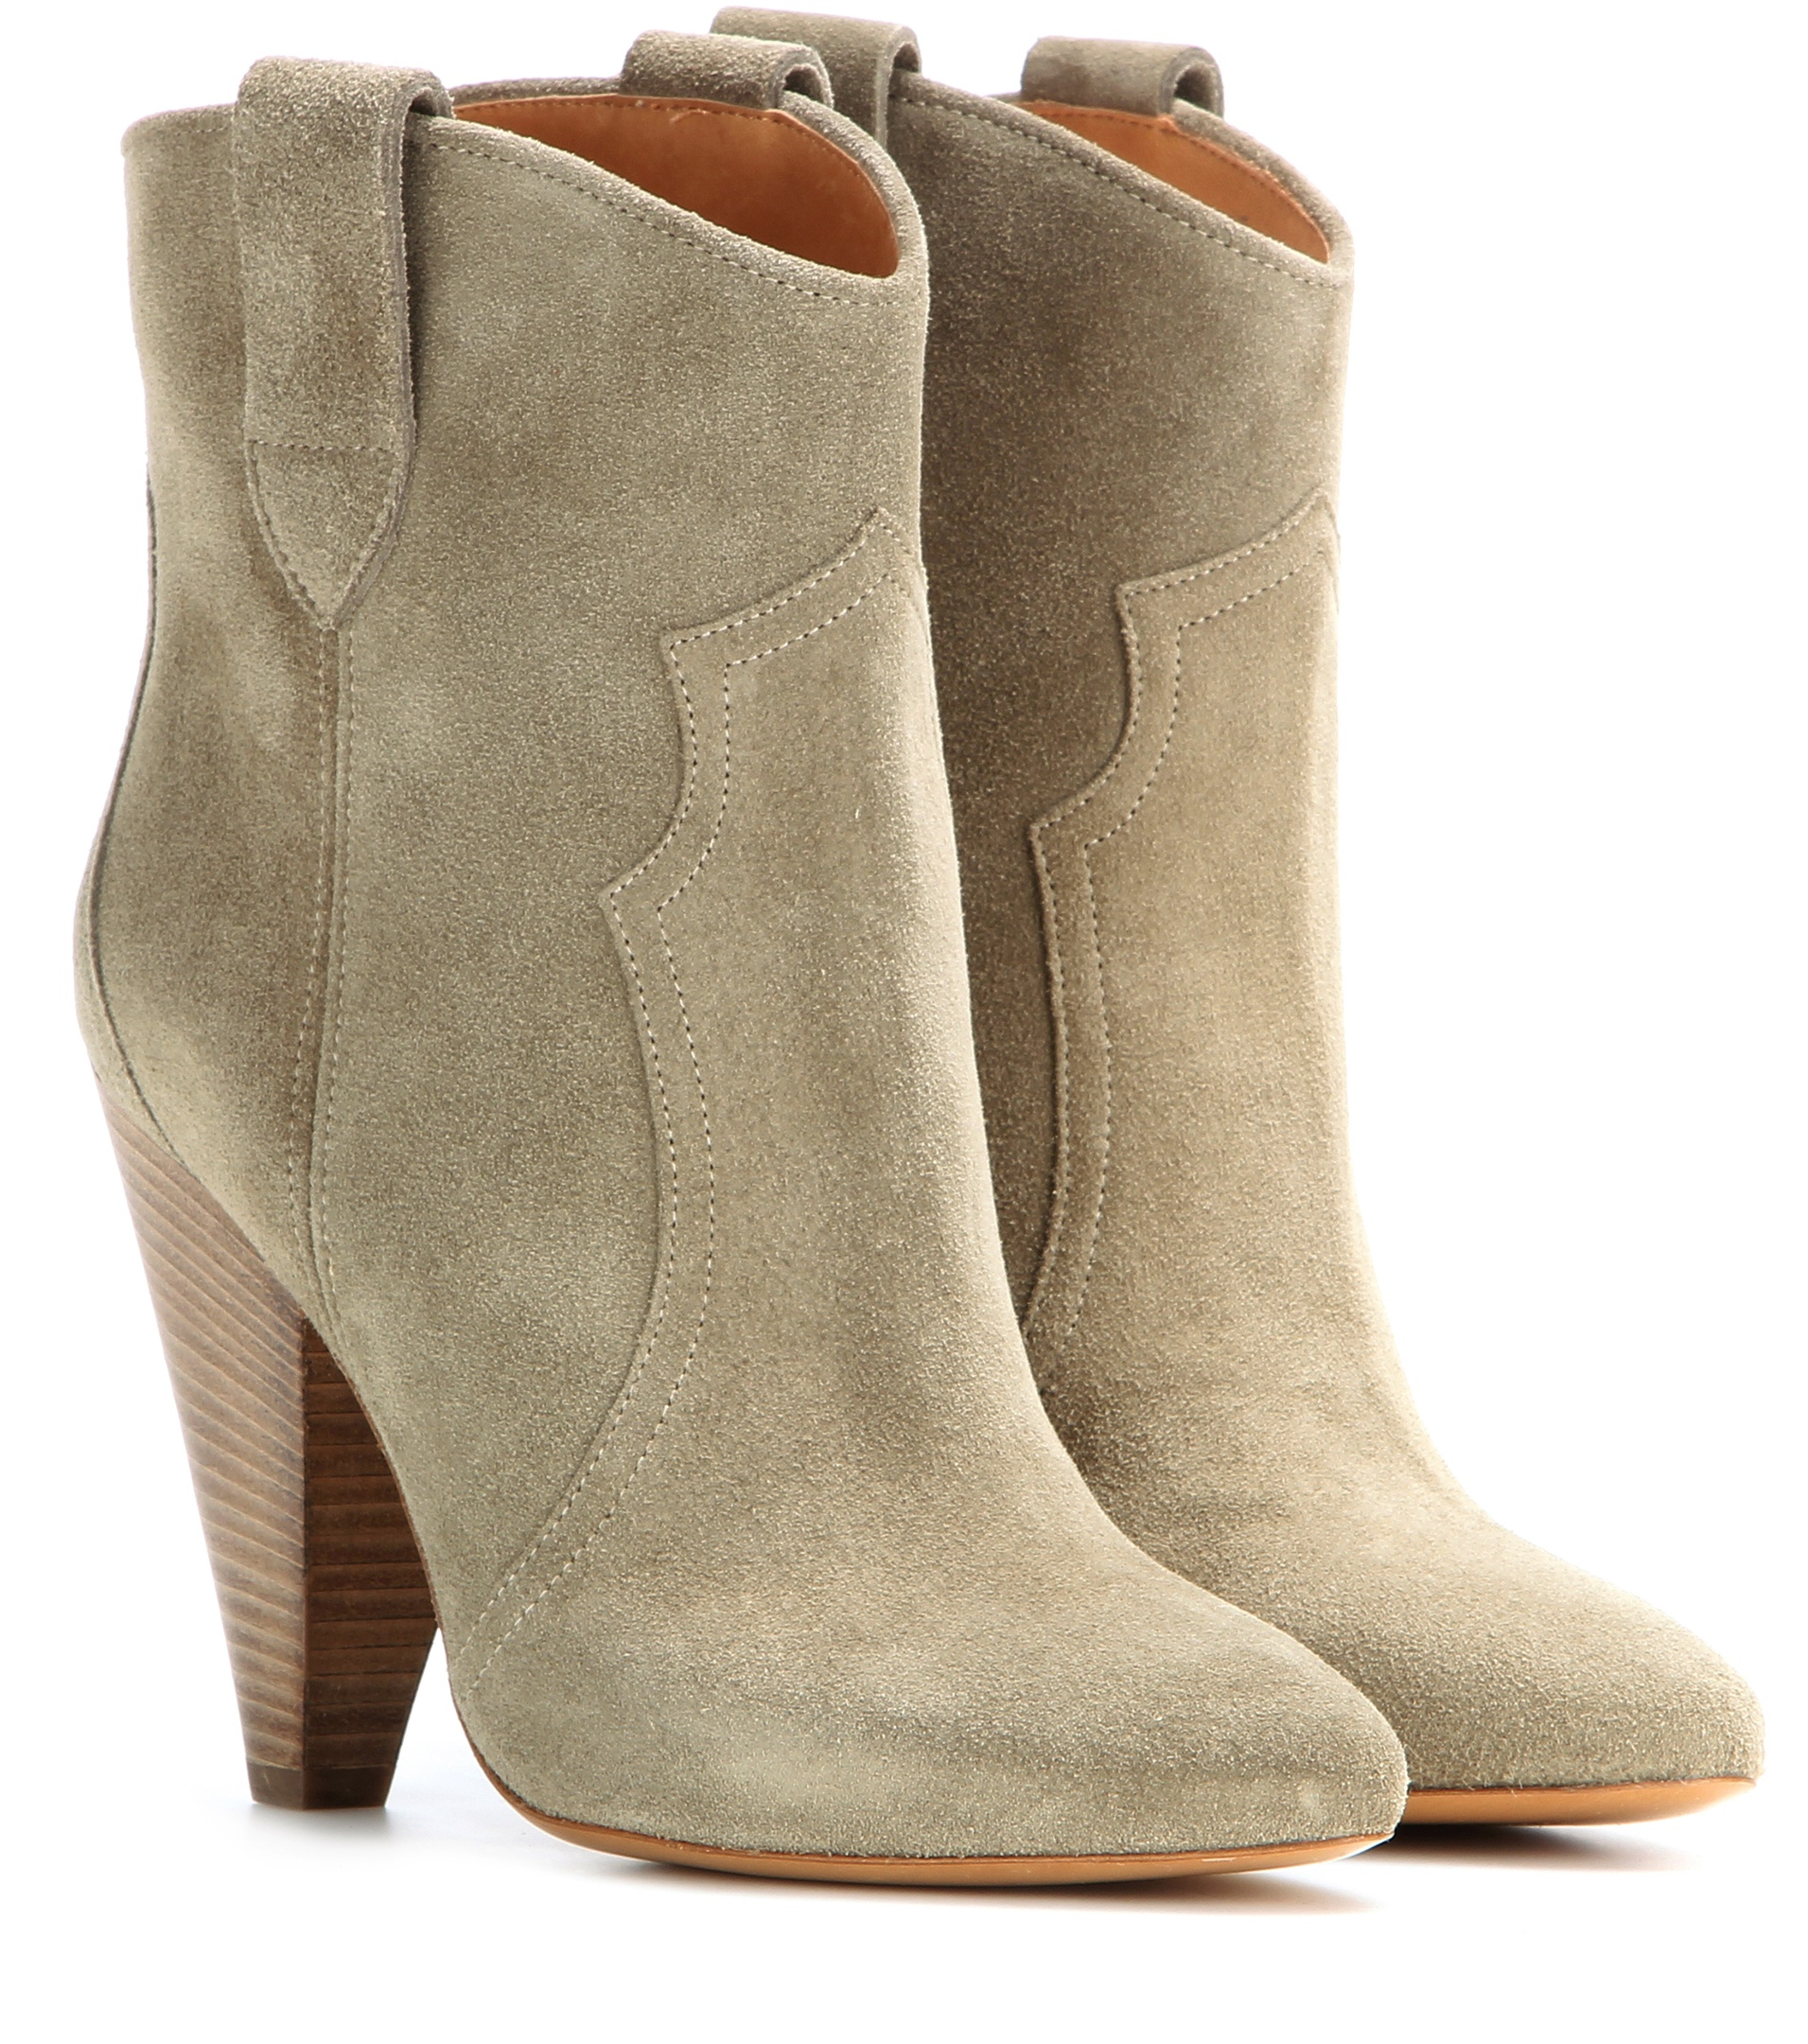 isabel marant toile roxann suede boots in natural lyst. Black Bedroom Furniture Sets. Home Design Ideas